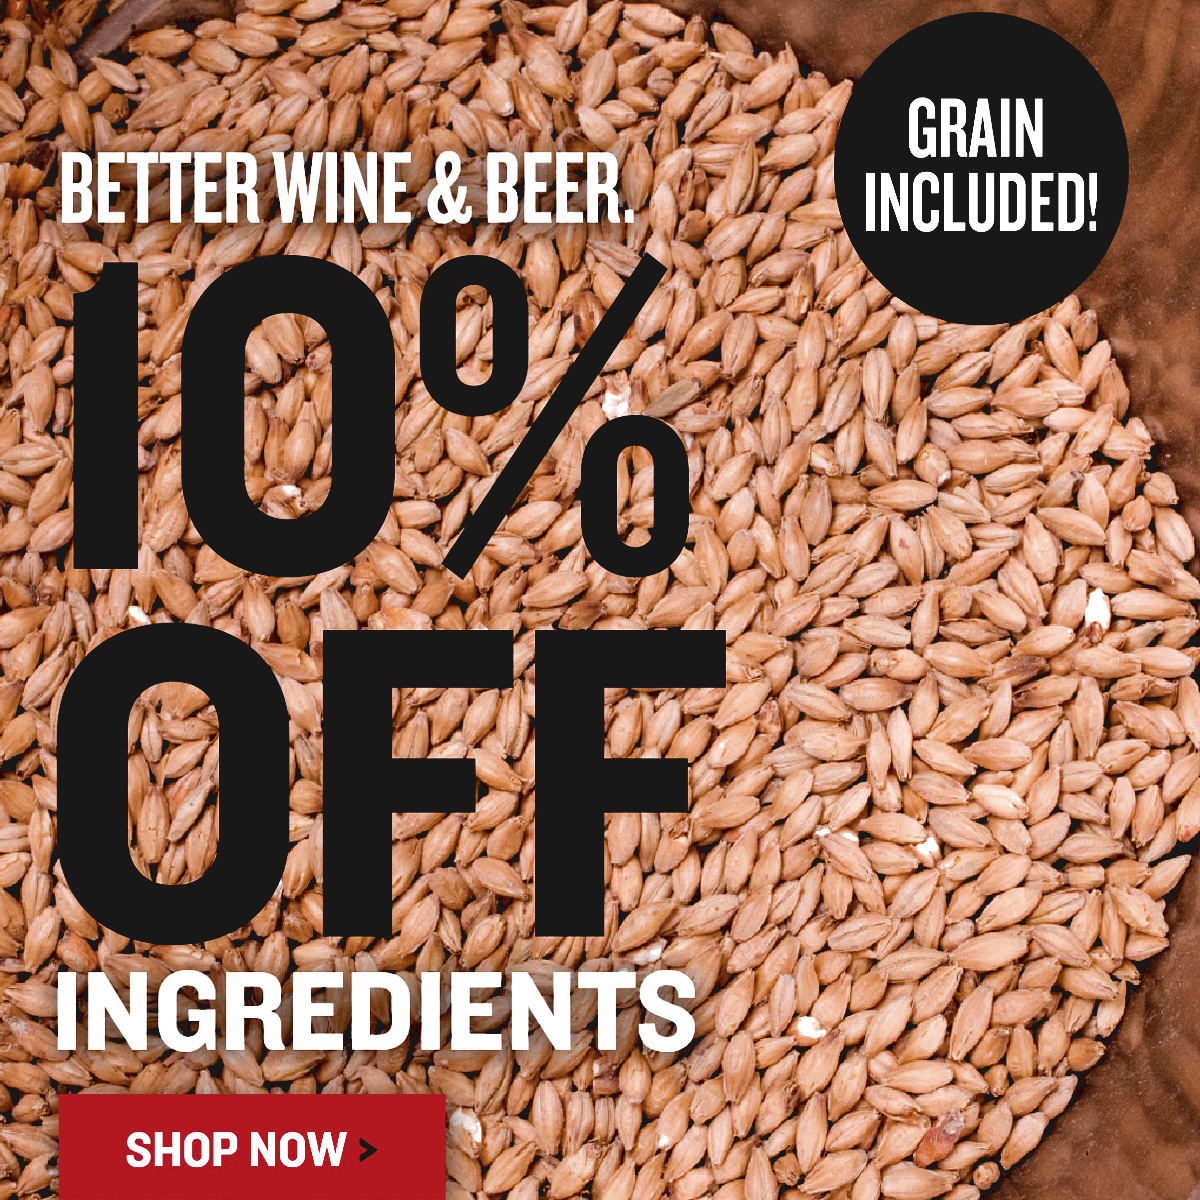 Home Wine Making Coupon Codes for Save 10% On Home Brewing Ingredients At NorthernBrewer.com With Coupon Coupon Code